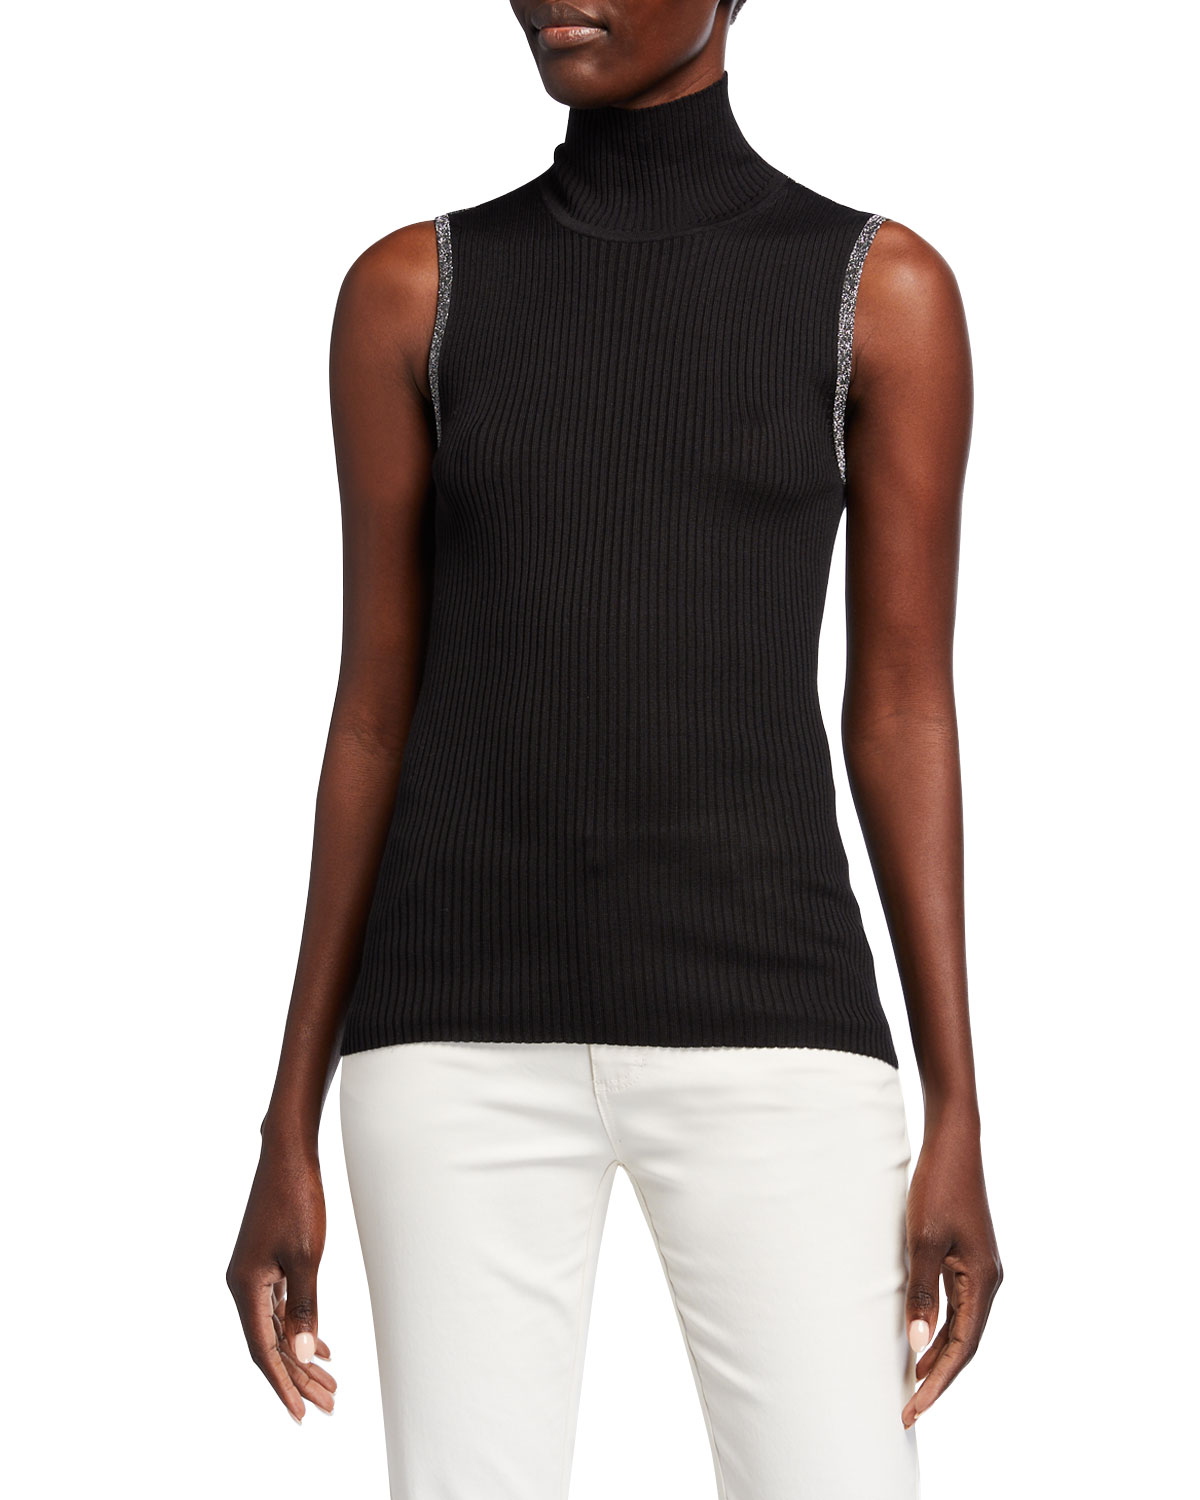 JED Skinny Mini Rib Sleeveless Turtleneck Sweater w/ Metallic Trim